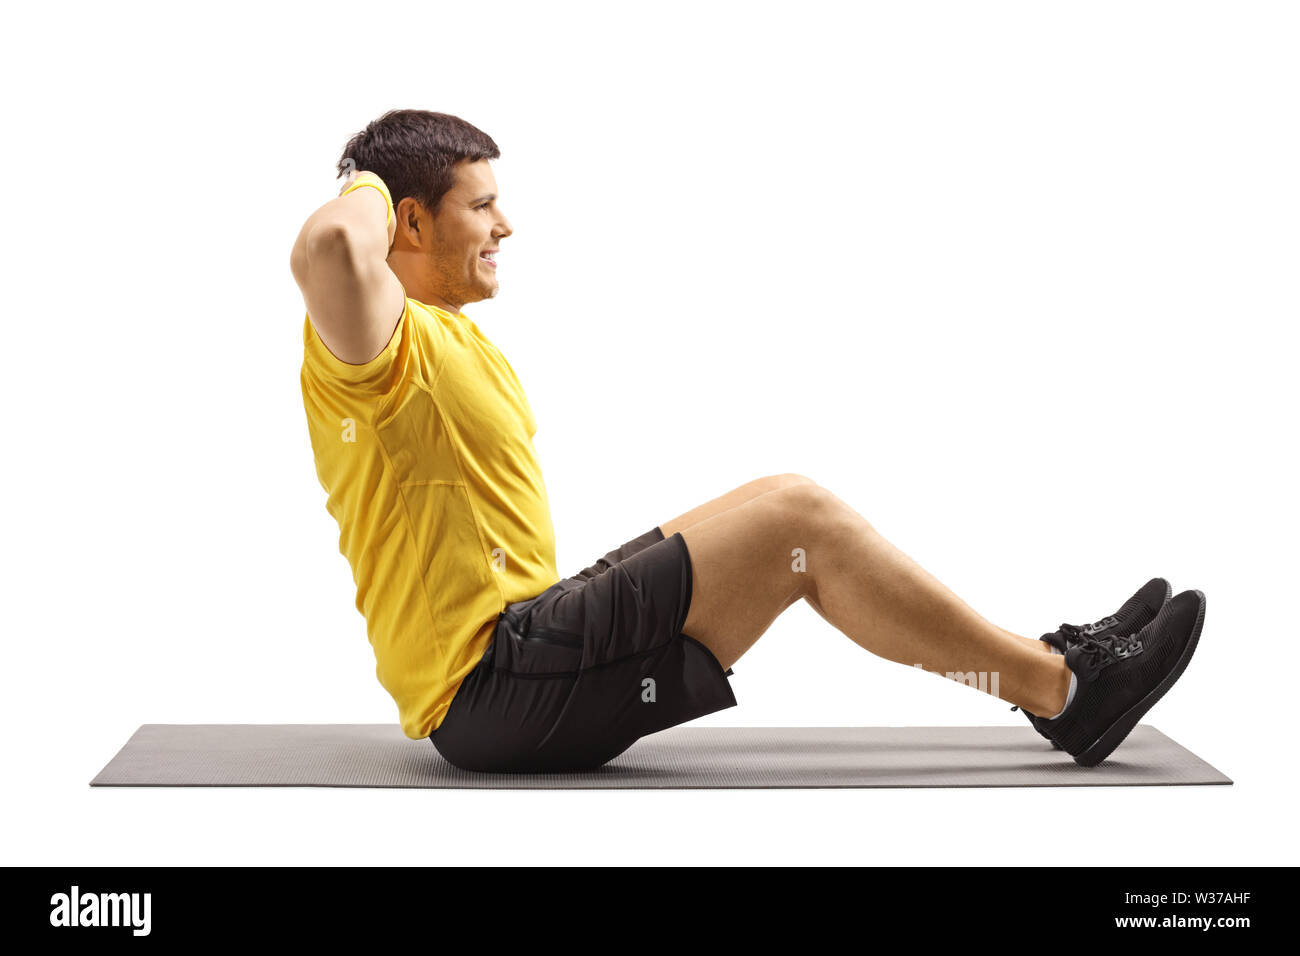 Abs Workout Stock Photos Abs Workout Stock Images Page 7